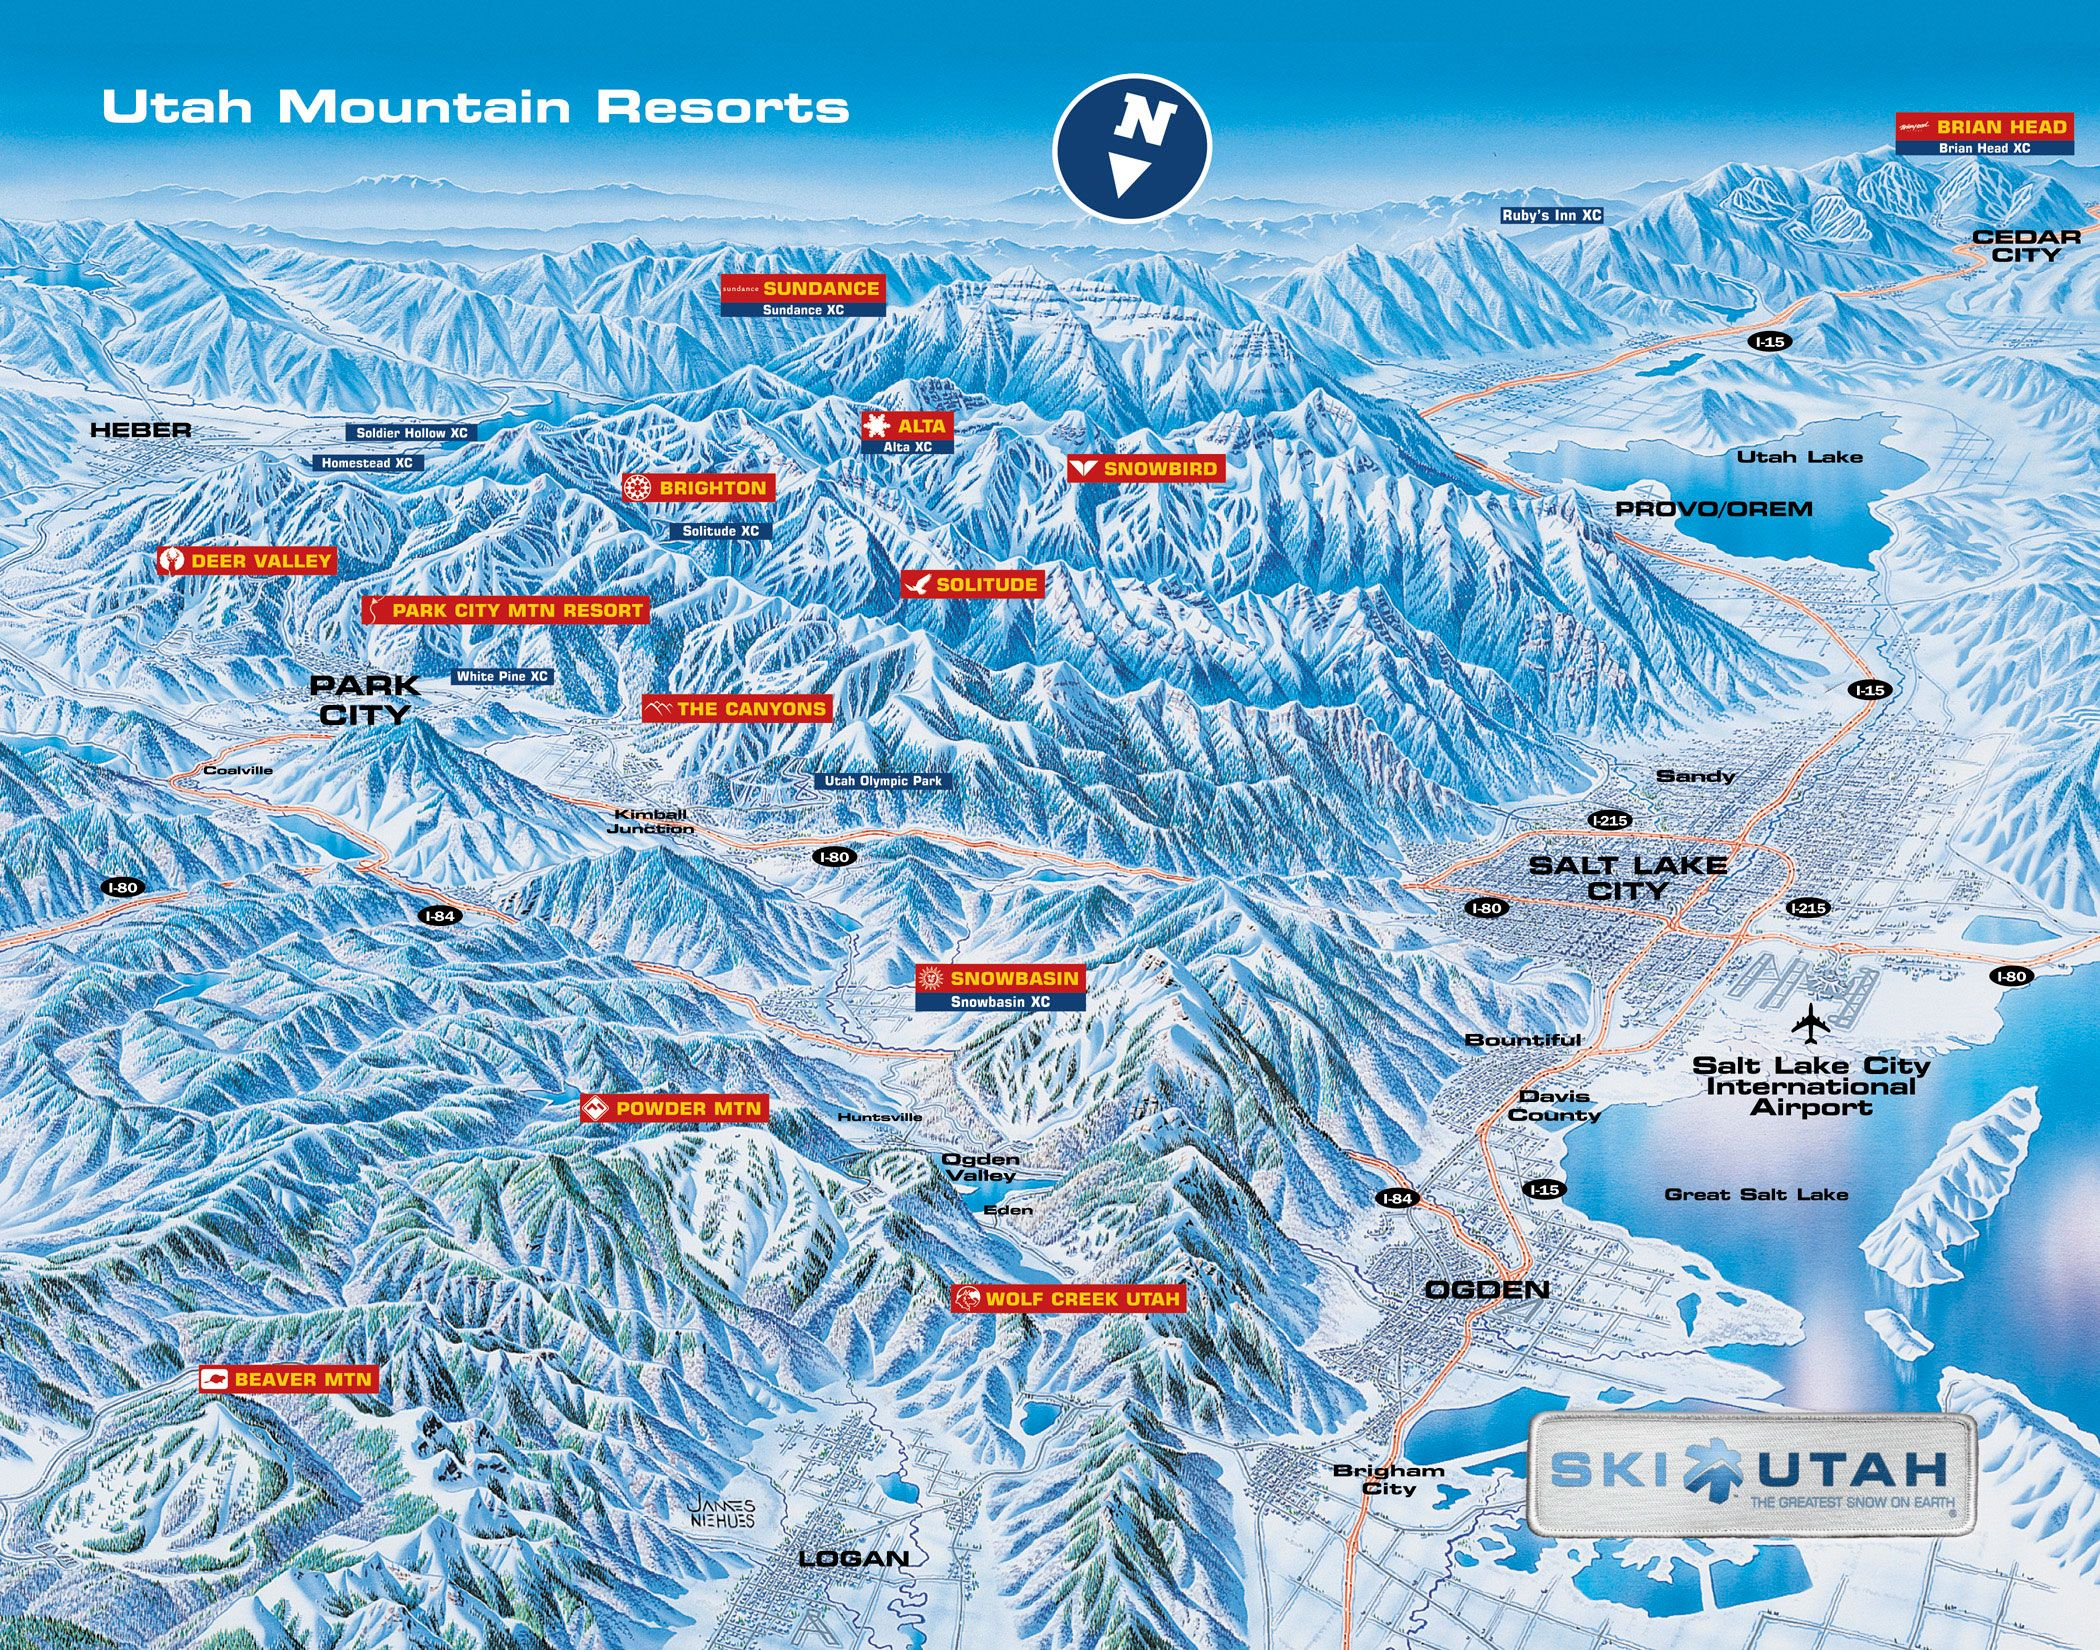 Ski Utah Map Utah Ski Resorts Map | Ski Utah in 2019 | Utah ski resorts, Park